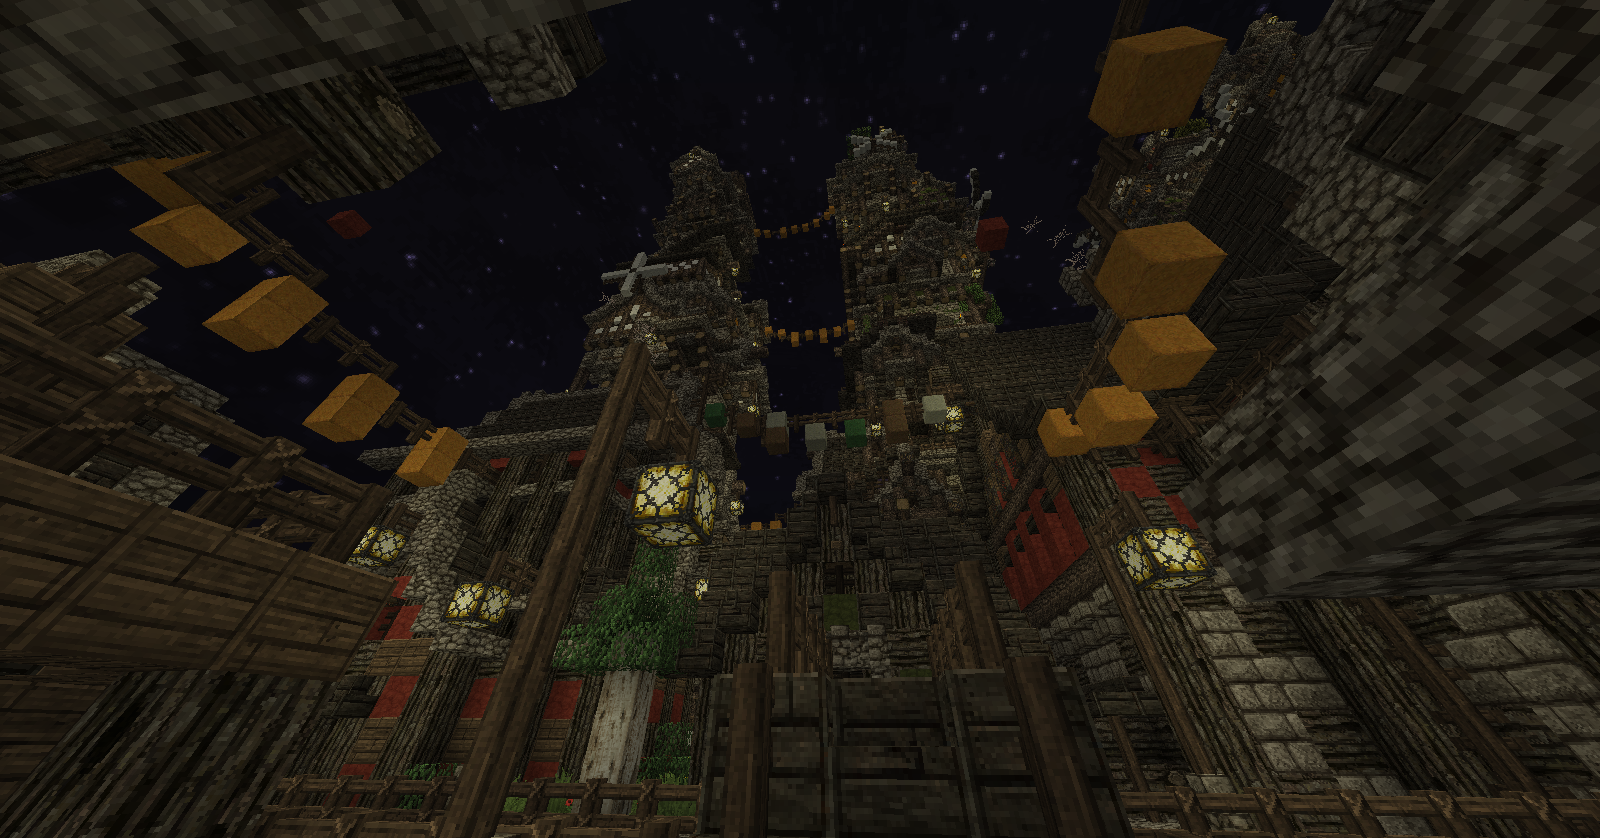 Cool Wallpaper Minecraft Steampunk - steampunk_towers___minecraft_by_2900d4u-d6s4ec7  Pic_455482.png